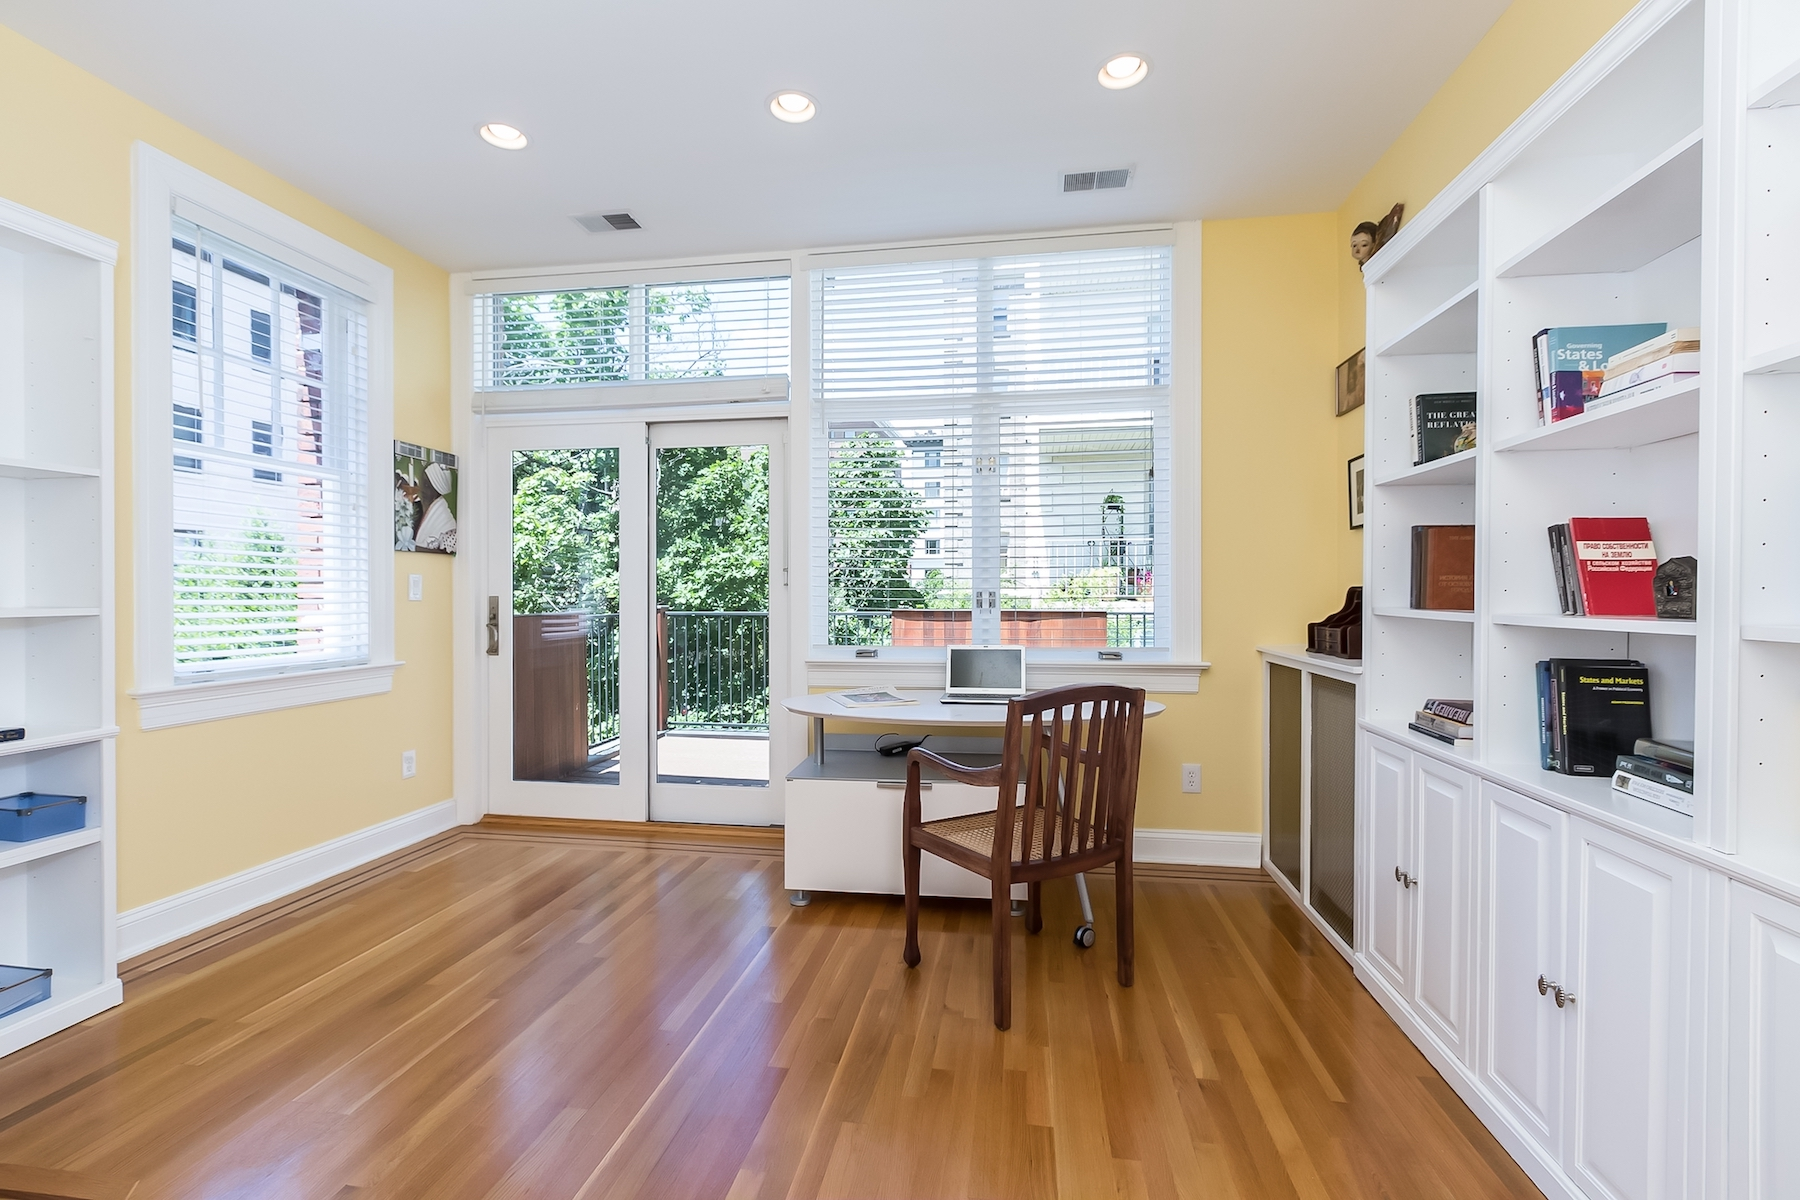 Additional photo for property listing at Kalorama 2119 Leroy Place Nw Washington, District Of Columbia 20008 United States